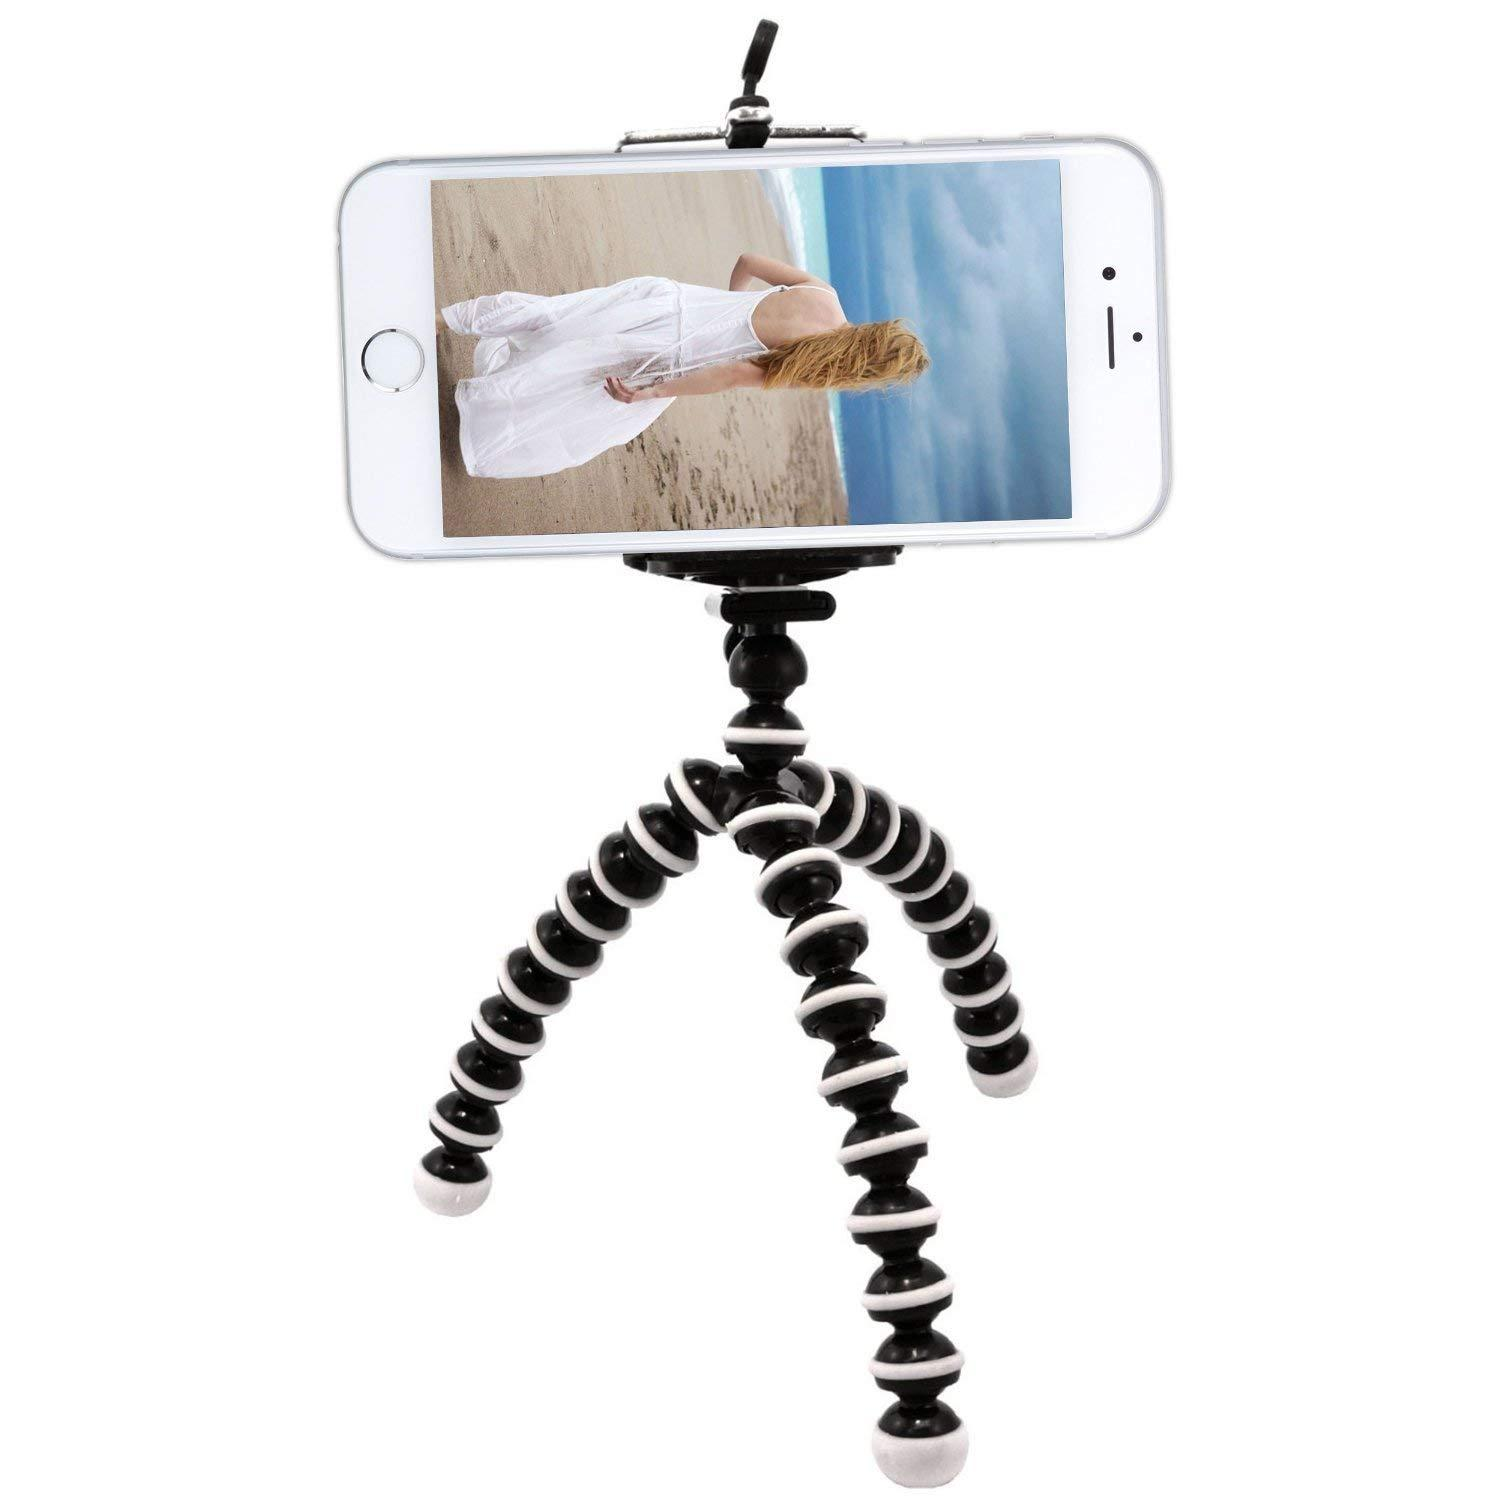 Gorilla Pod Camera Accessories Philippines Photography Gopro Hero Acc Remote 20 Small Octopus Flexible Tripod Stand Gorillapod For Smartphone Mount Action